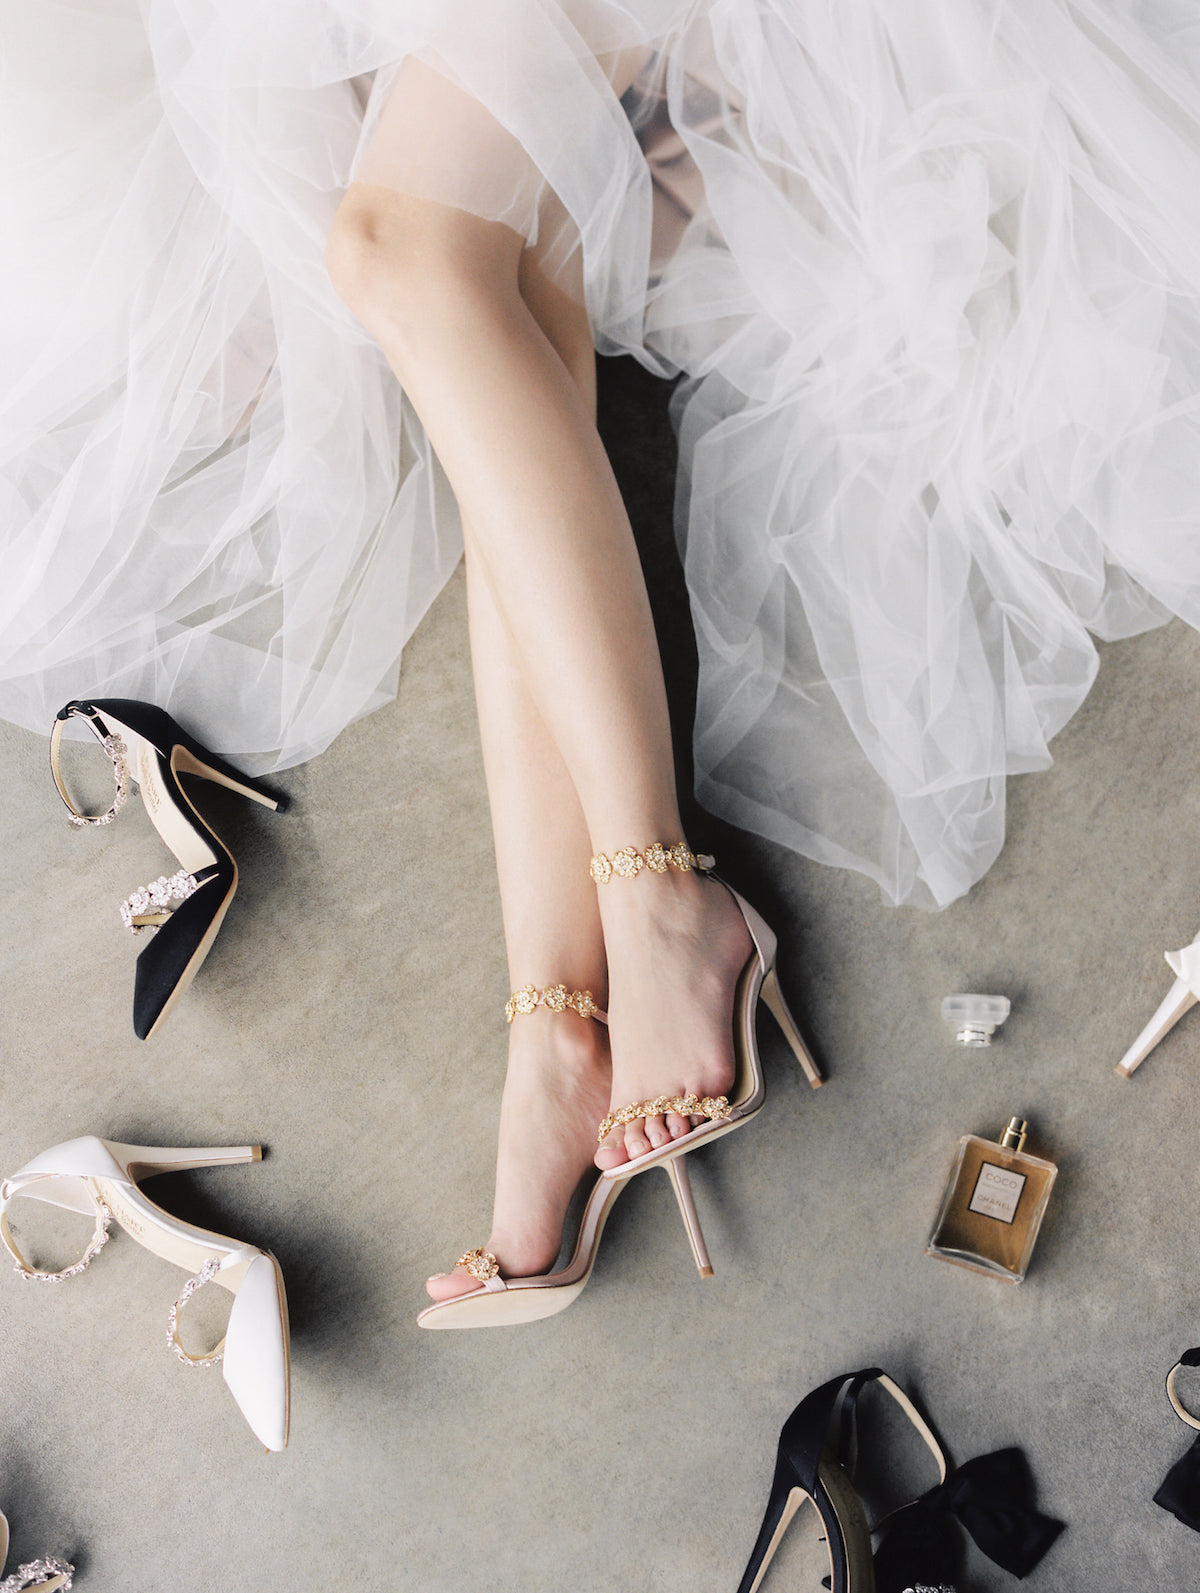 bella belle x liv hart evening shoes collection